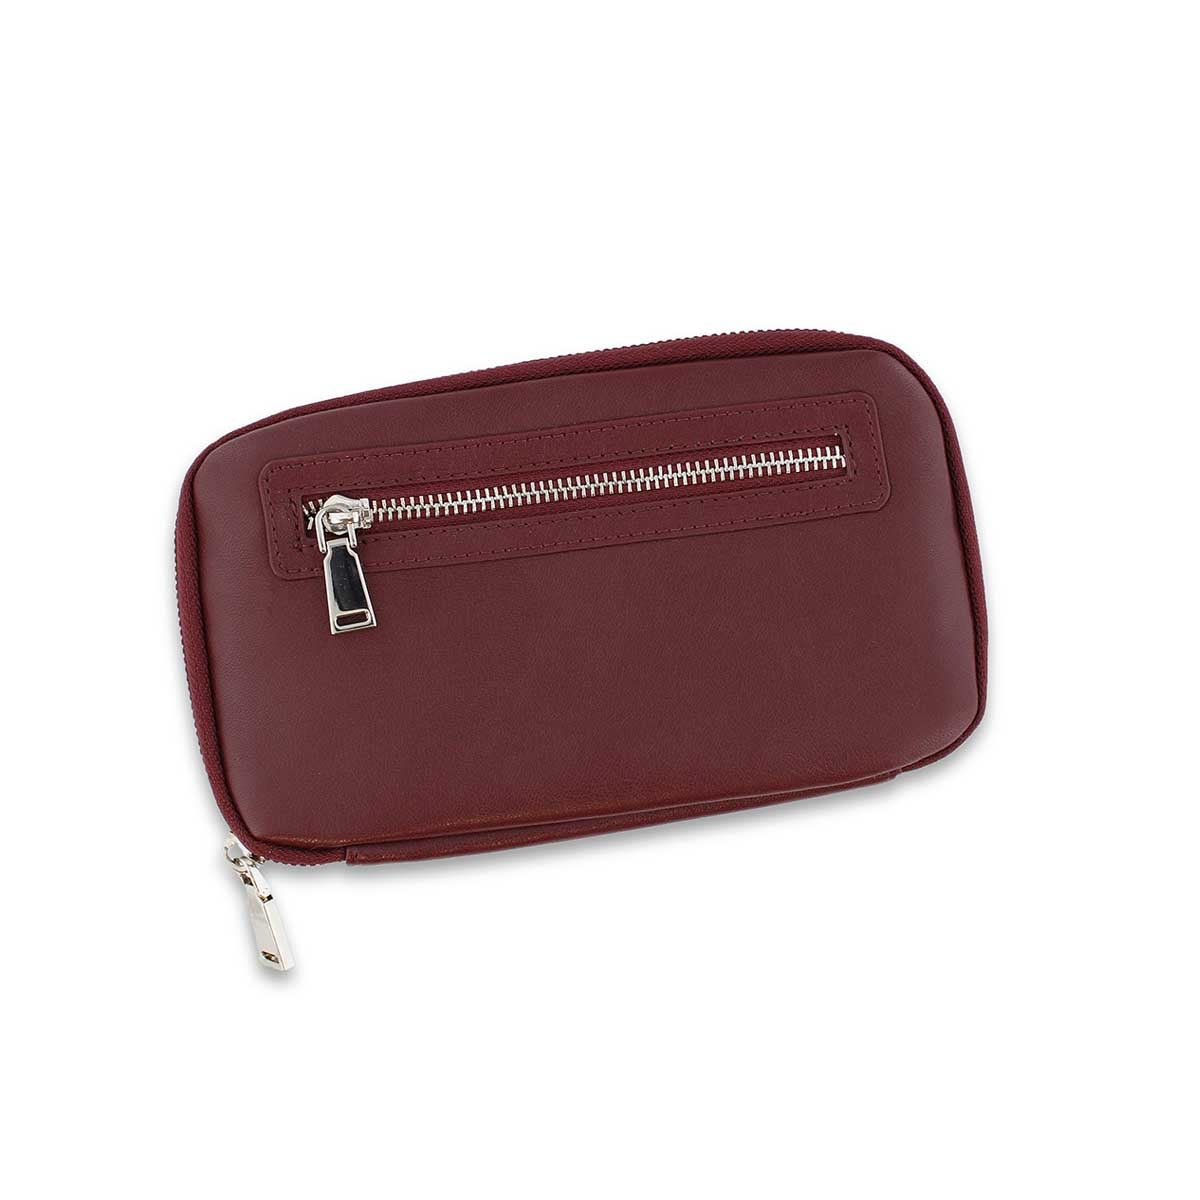 Lds Nappa World wine wallet